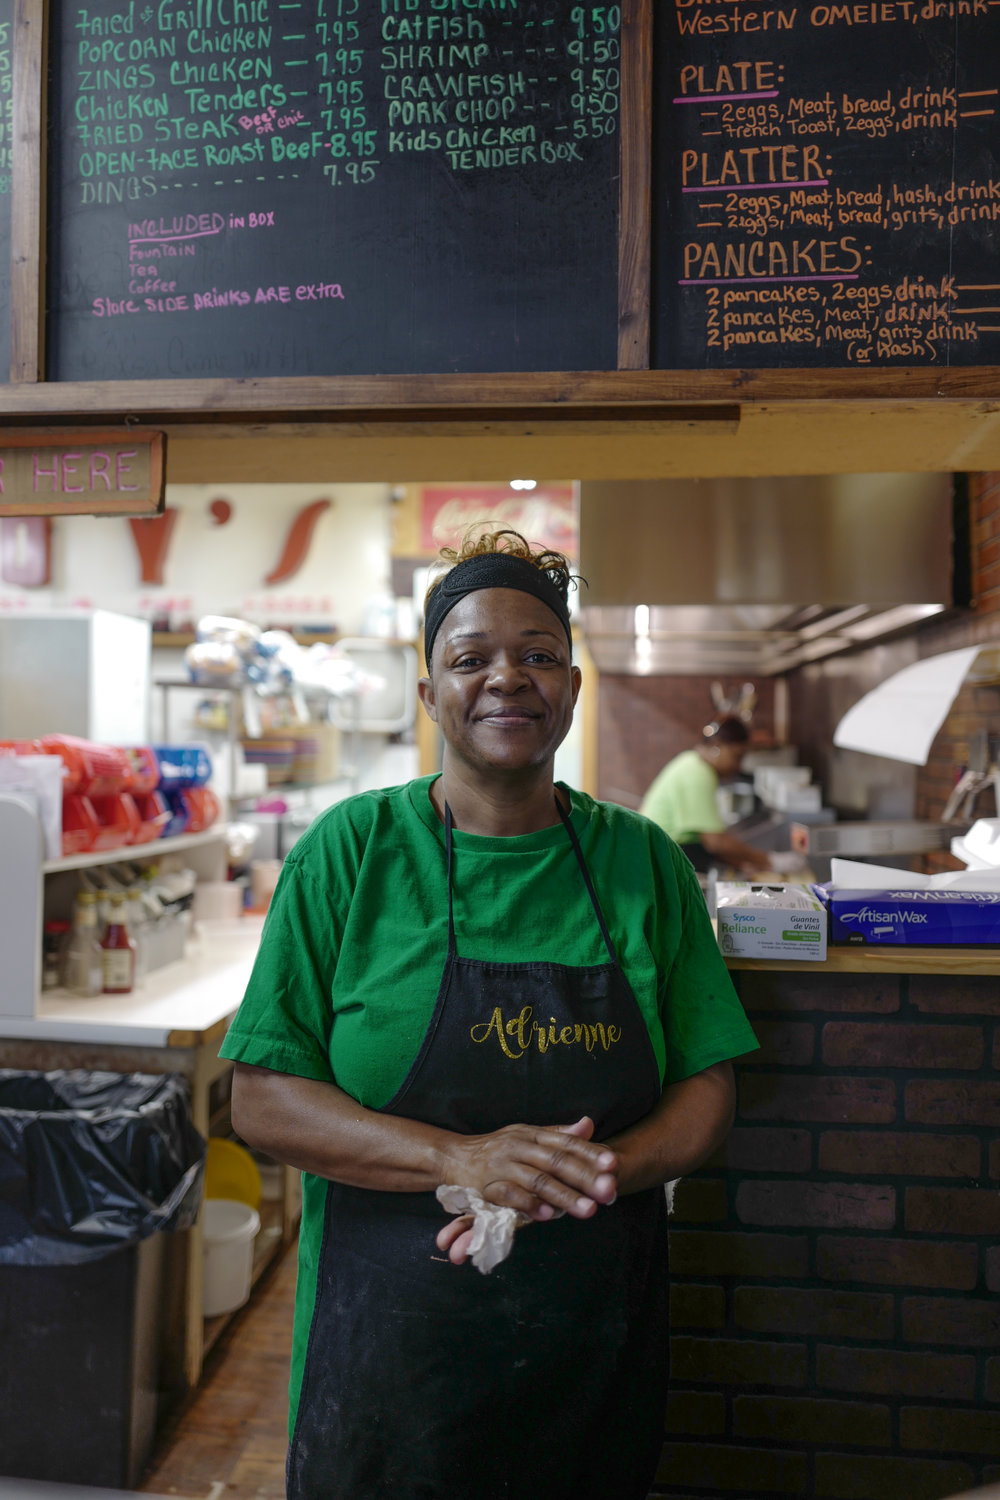 Adrienne, cook at Roy's Store, Charleston, Mississippi. Roy's is one of the last remaining country stores in Mississippi and has been in business for over 100 years.